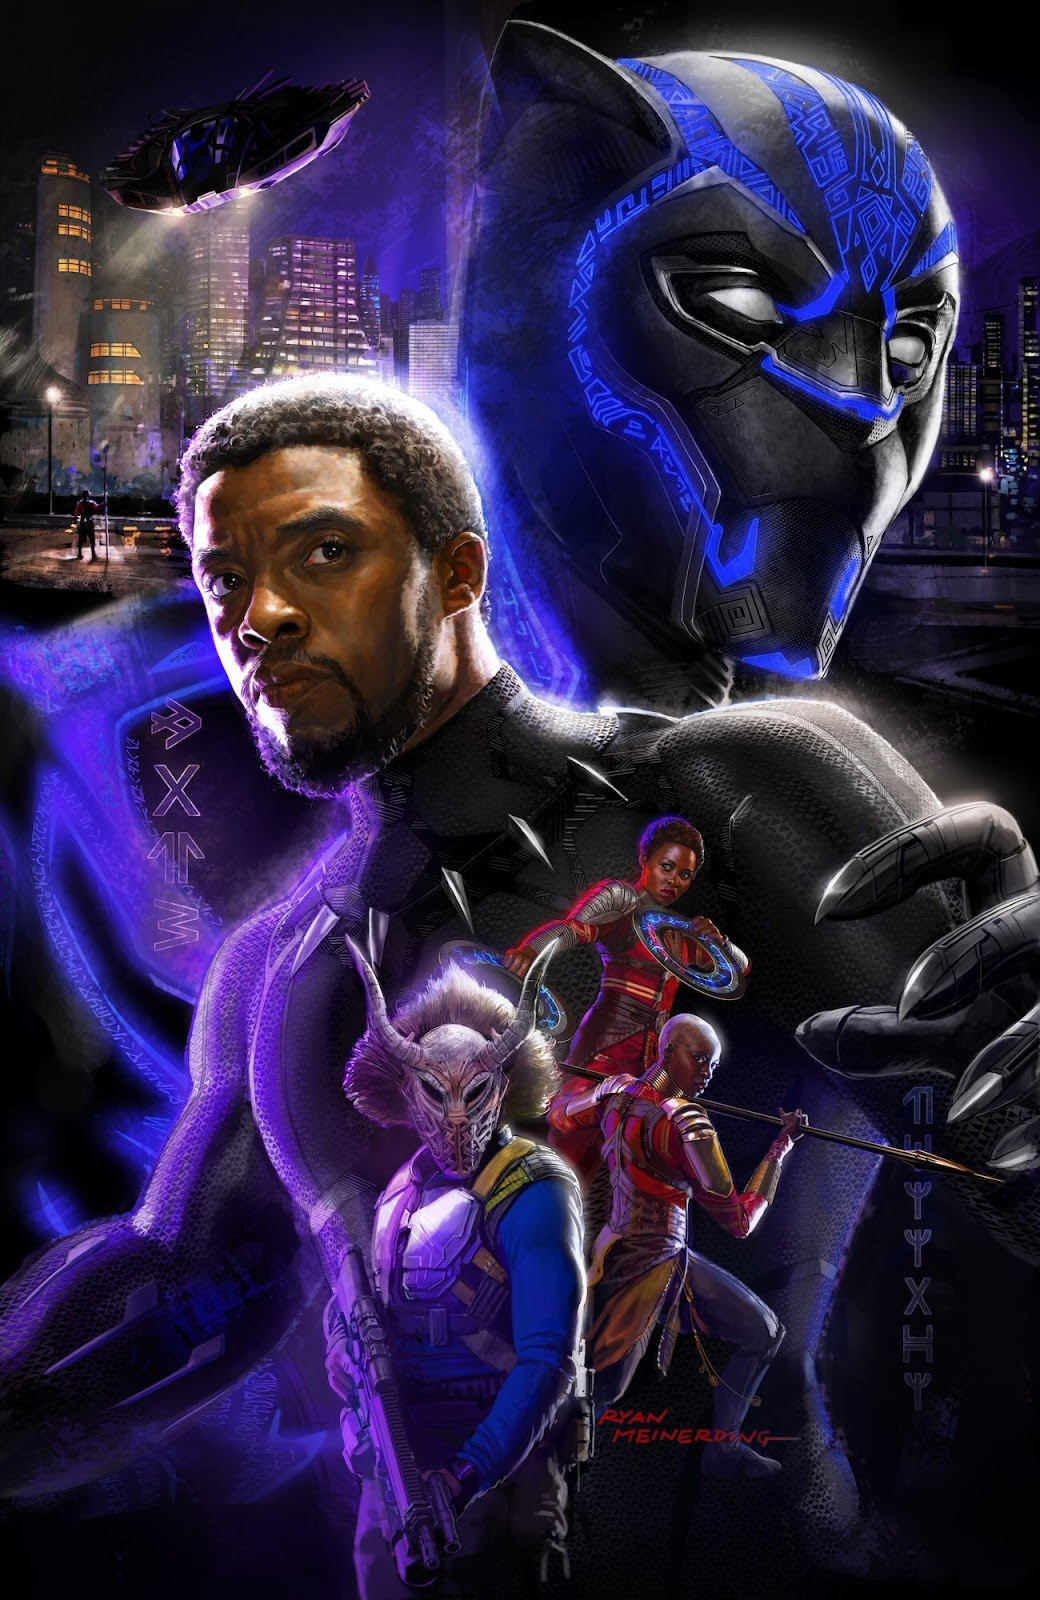 Warrior Falls Mcu Wallpaper Check Out The Black Panther Concept Art Poster Given Out